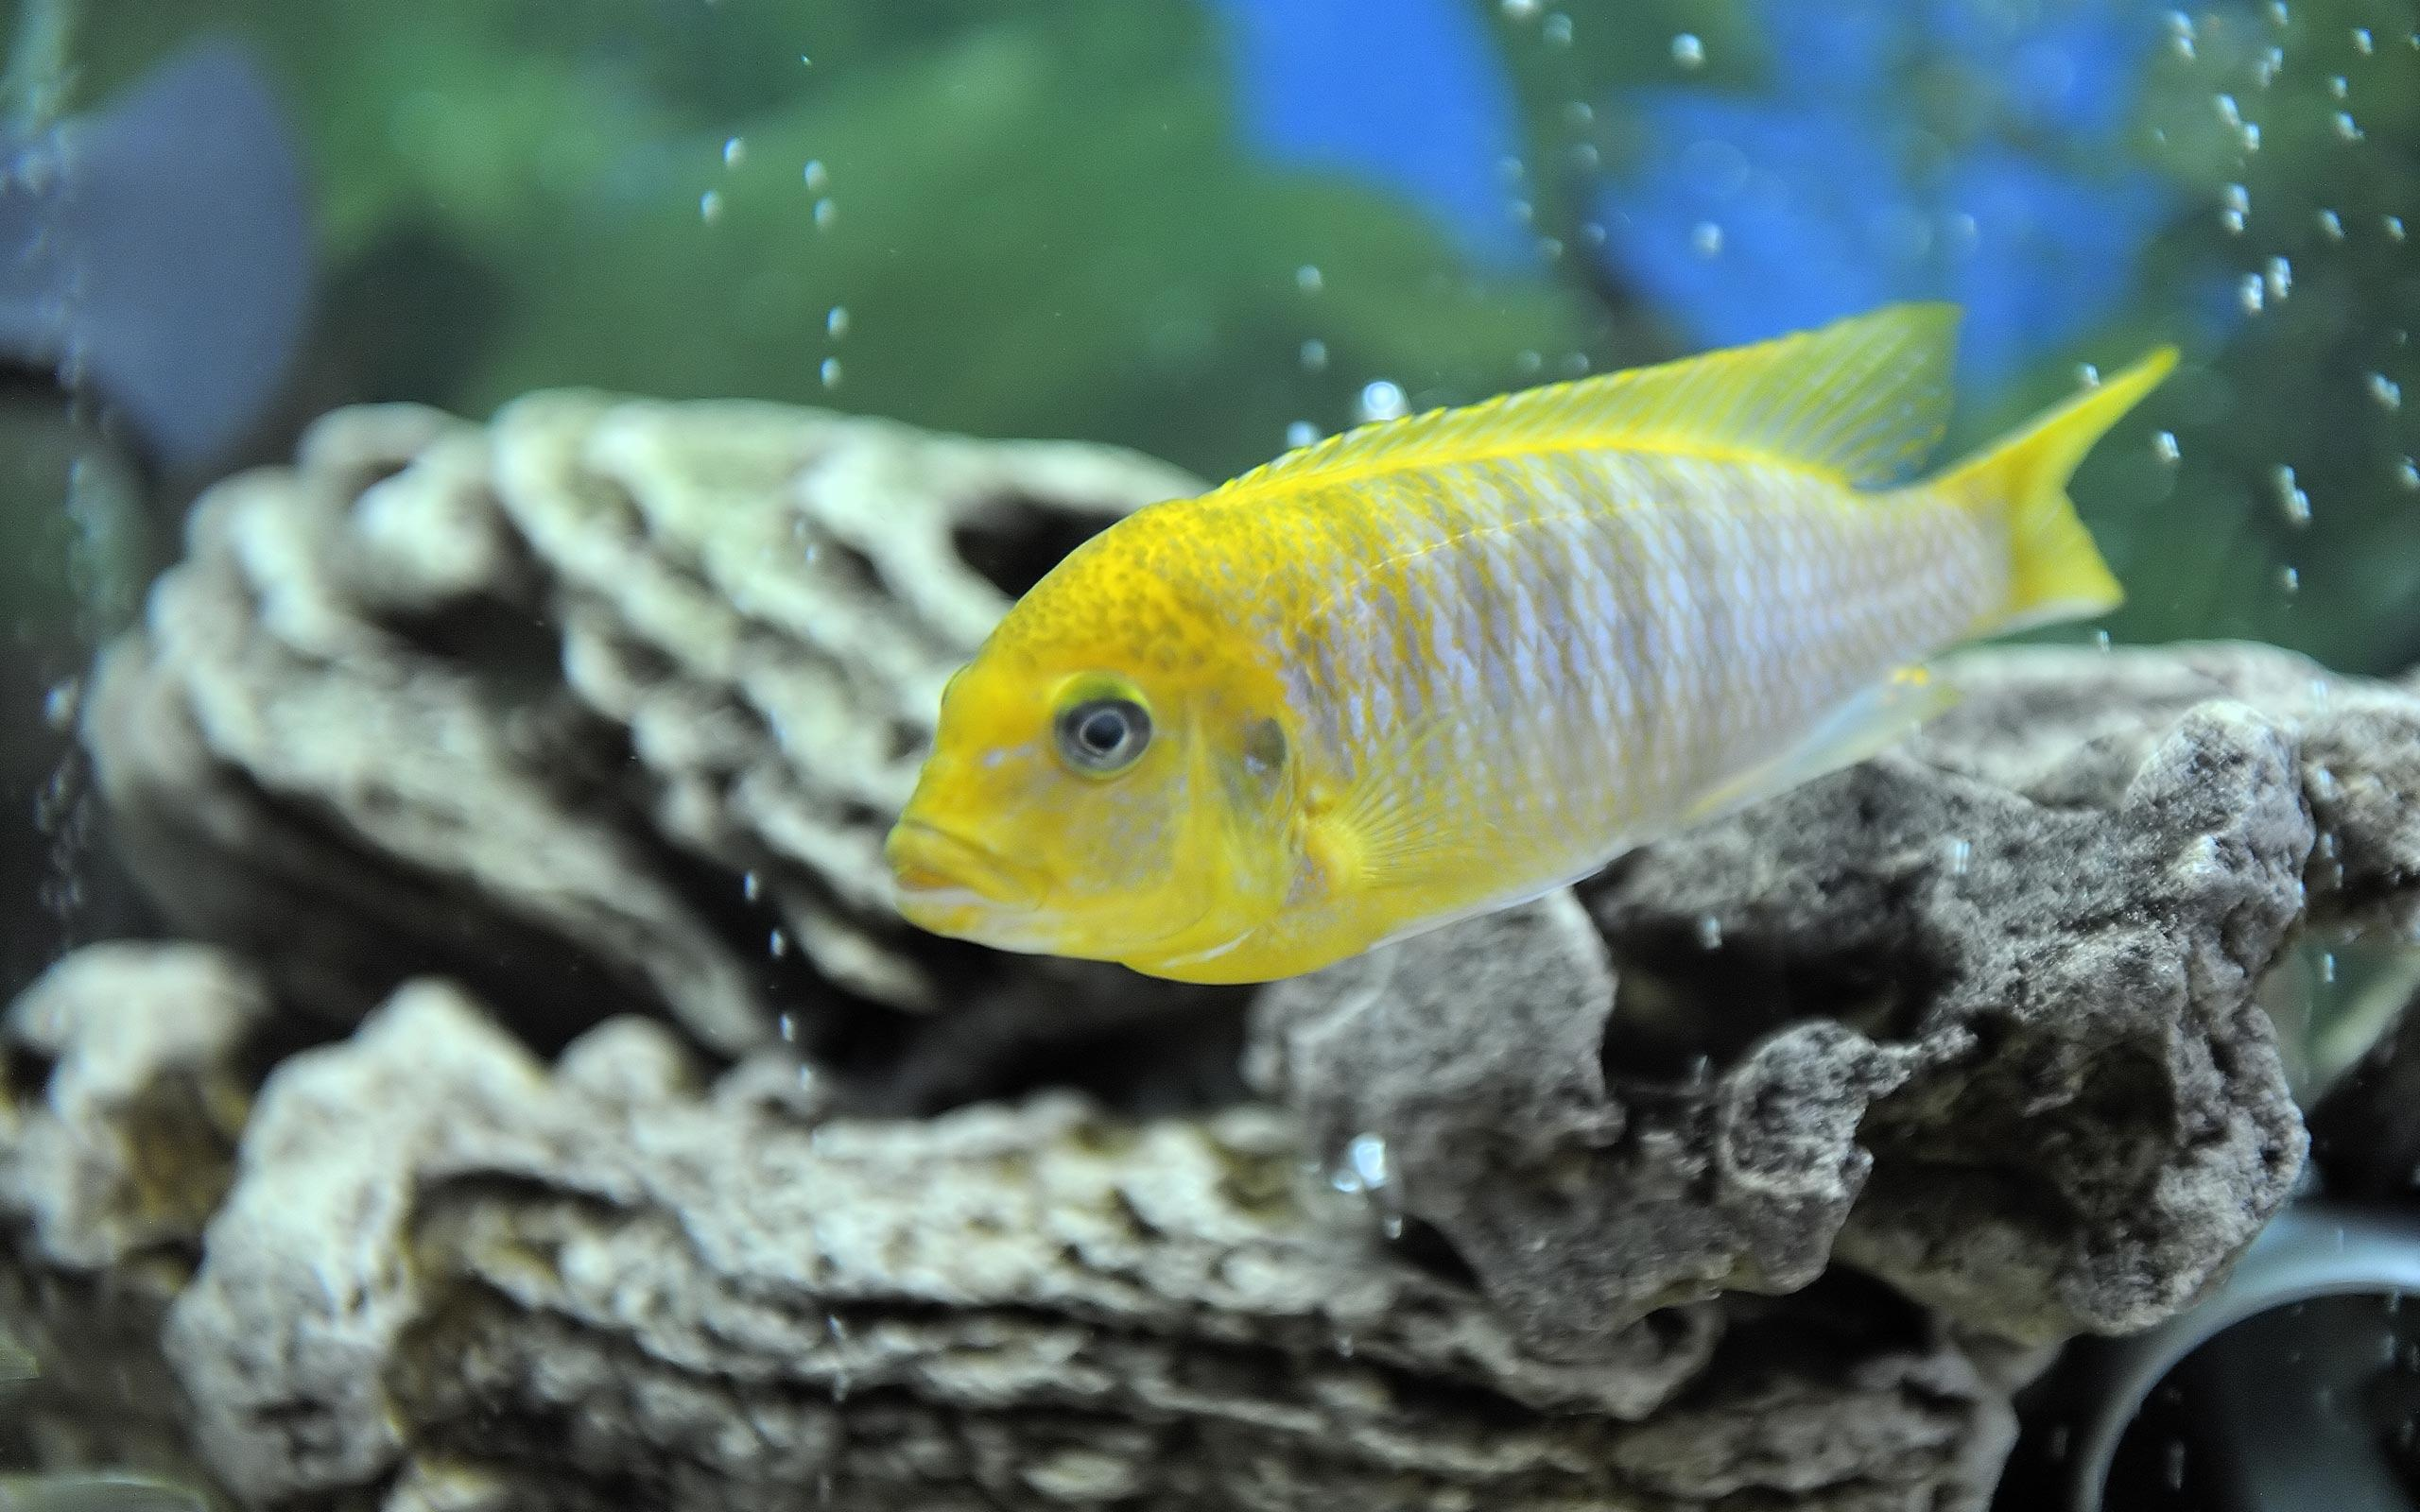 Malawi Aggressive Cichlid Hd Wallpaper (7723) at Wallpaper desktop ...